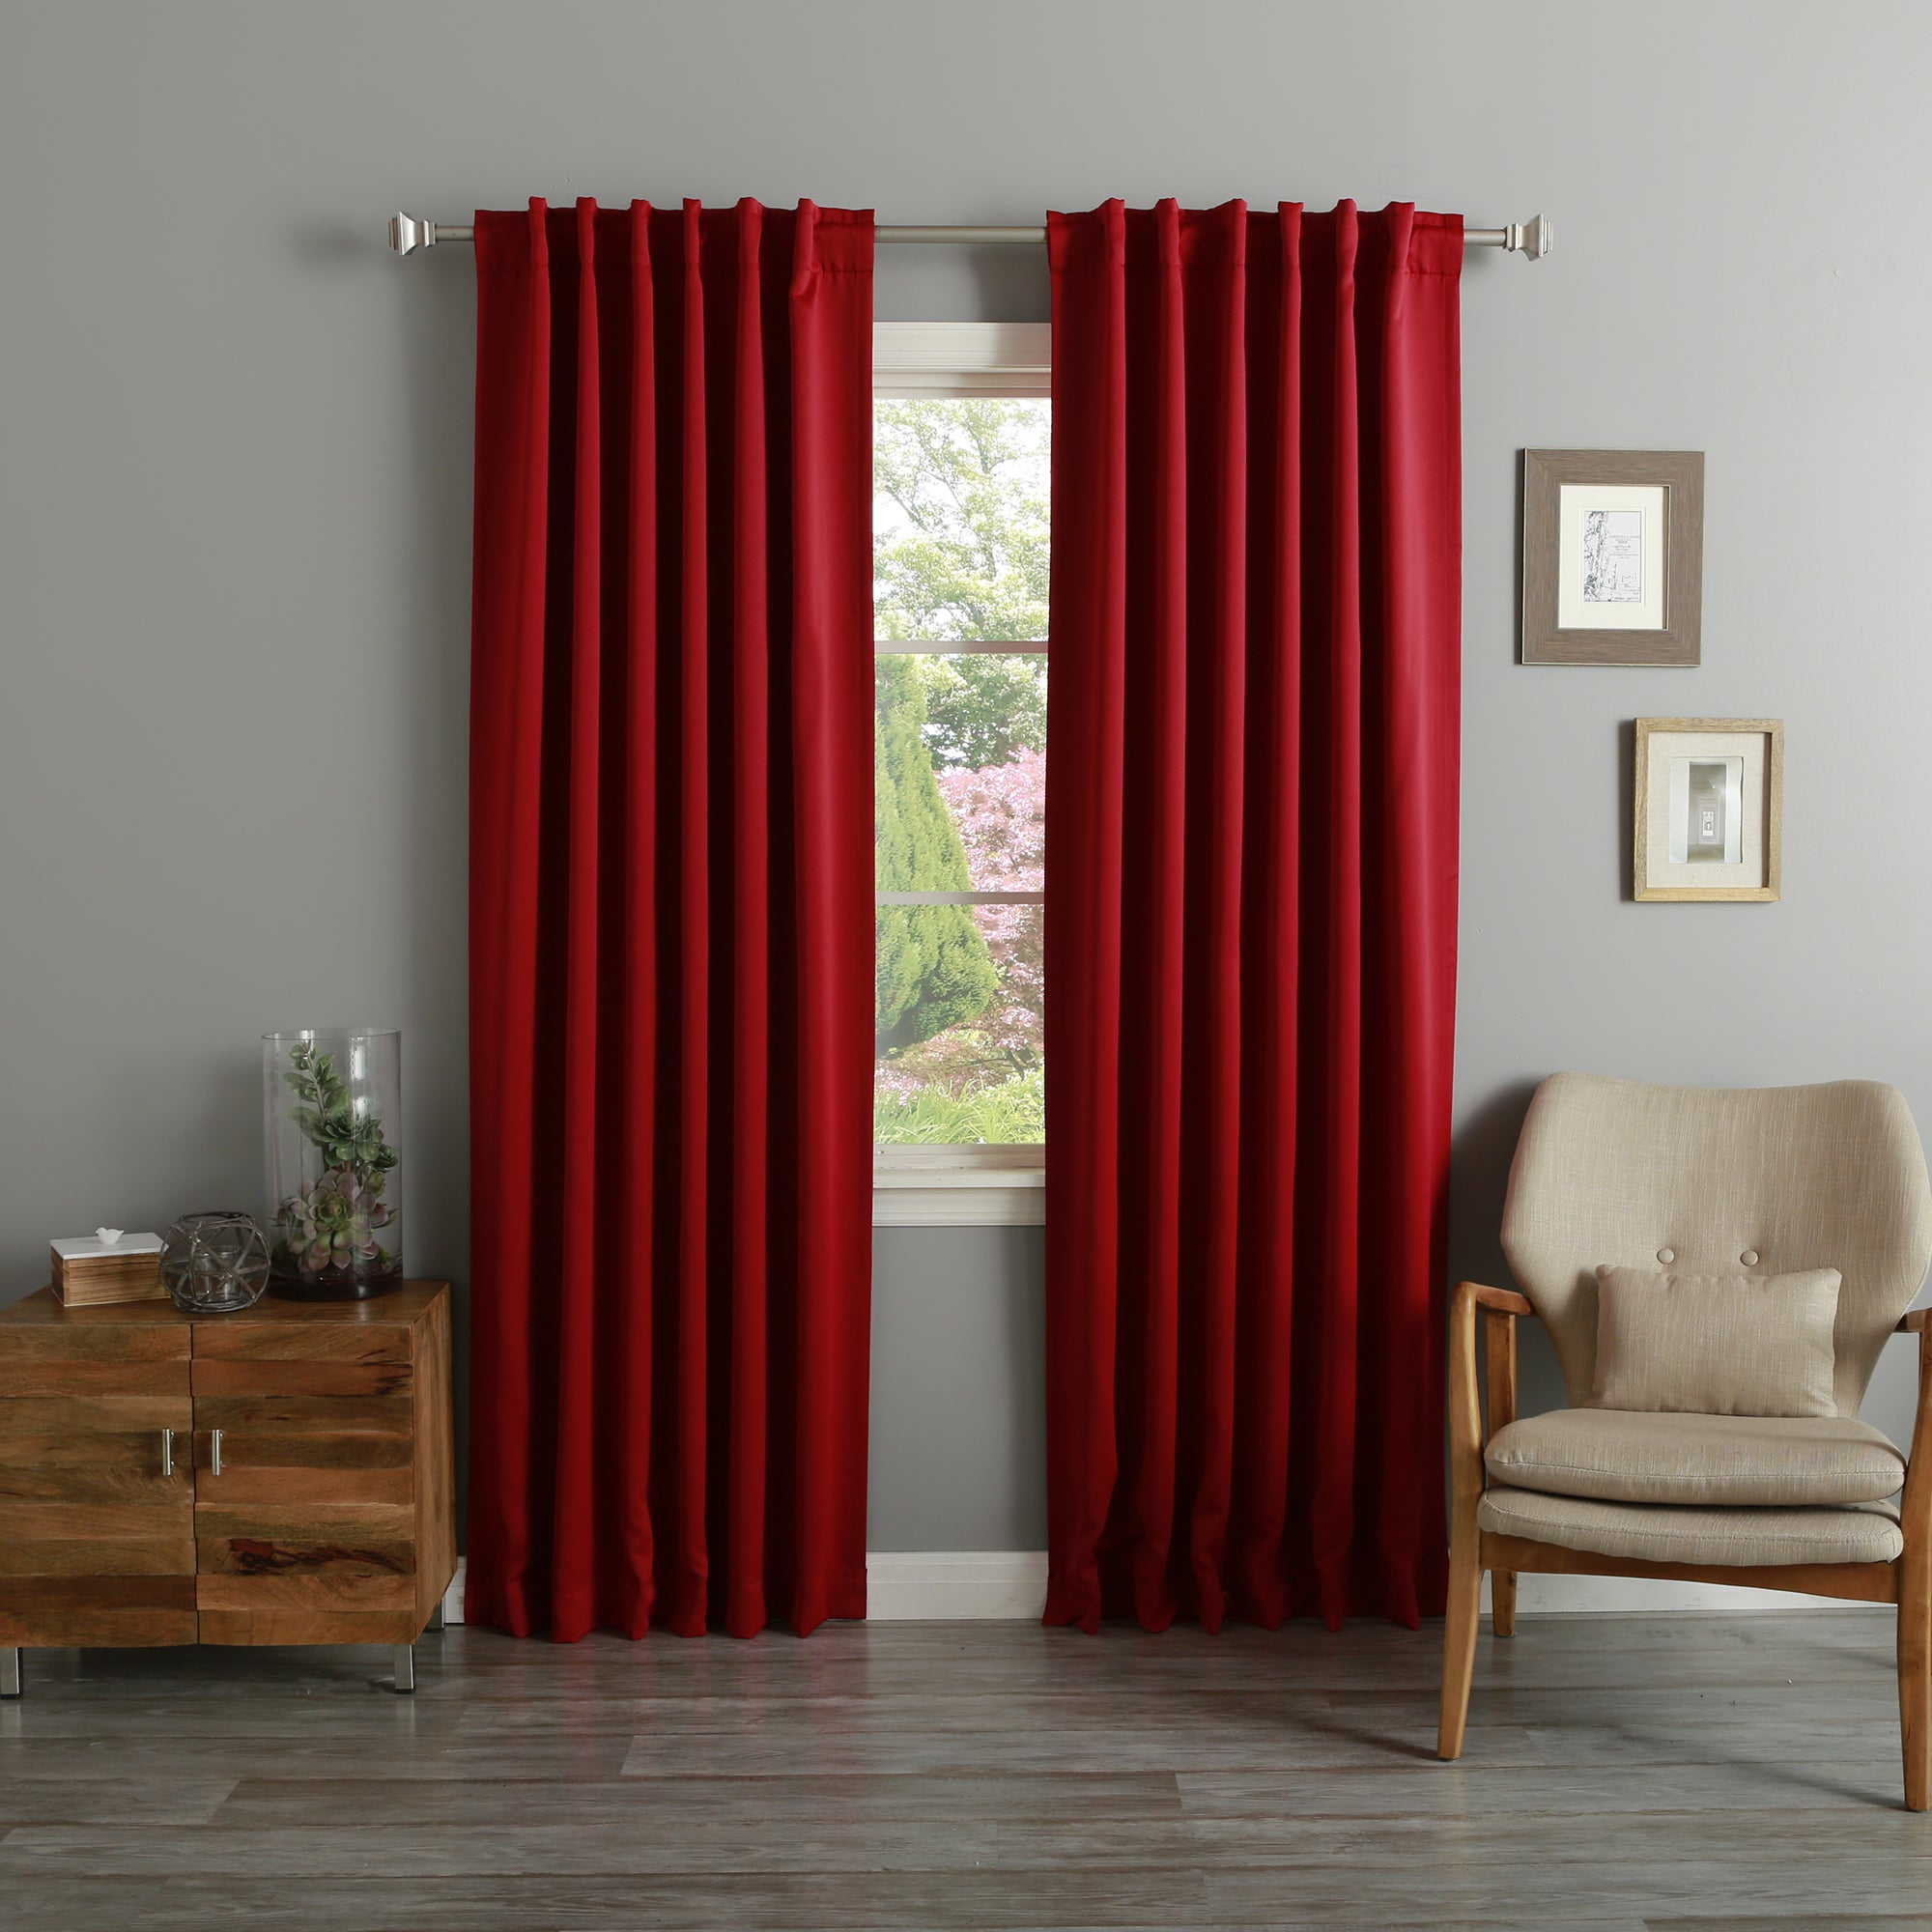 Top Aurora Home Thermal Rod Pocket 96-inch Blackout Curtain Panel Pair  KT32